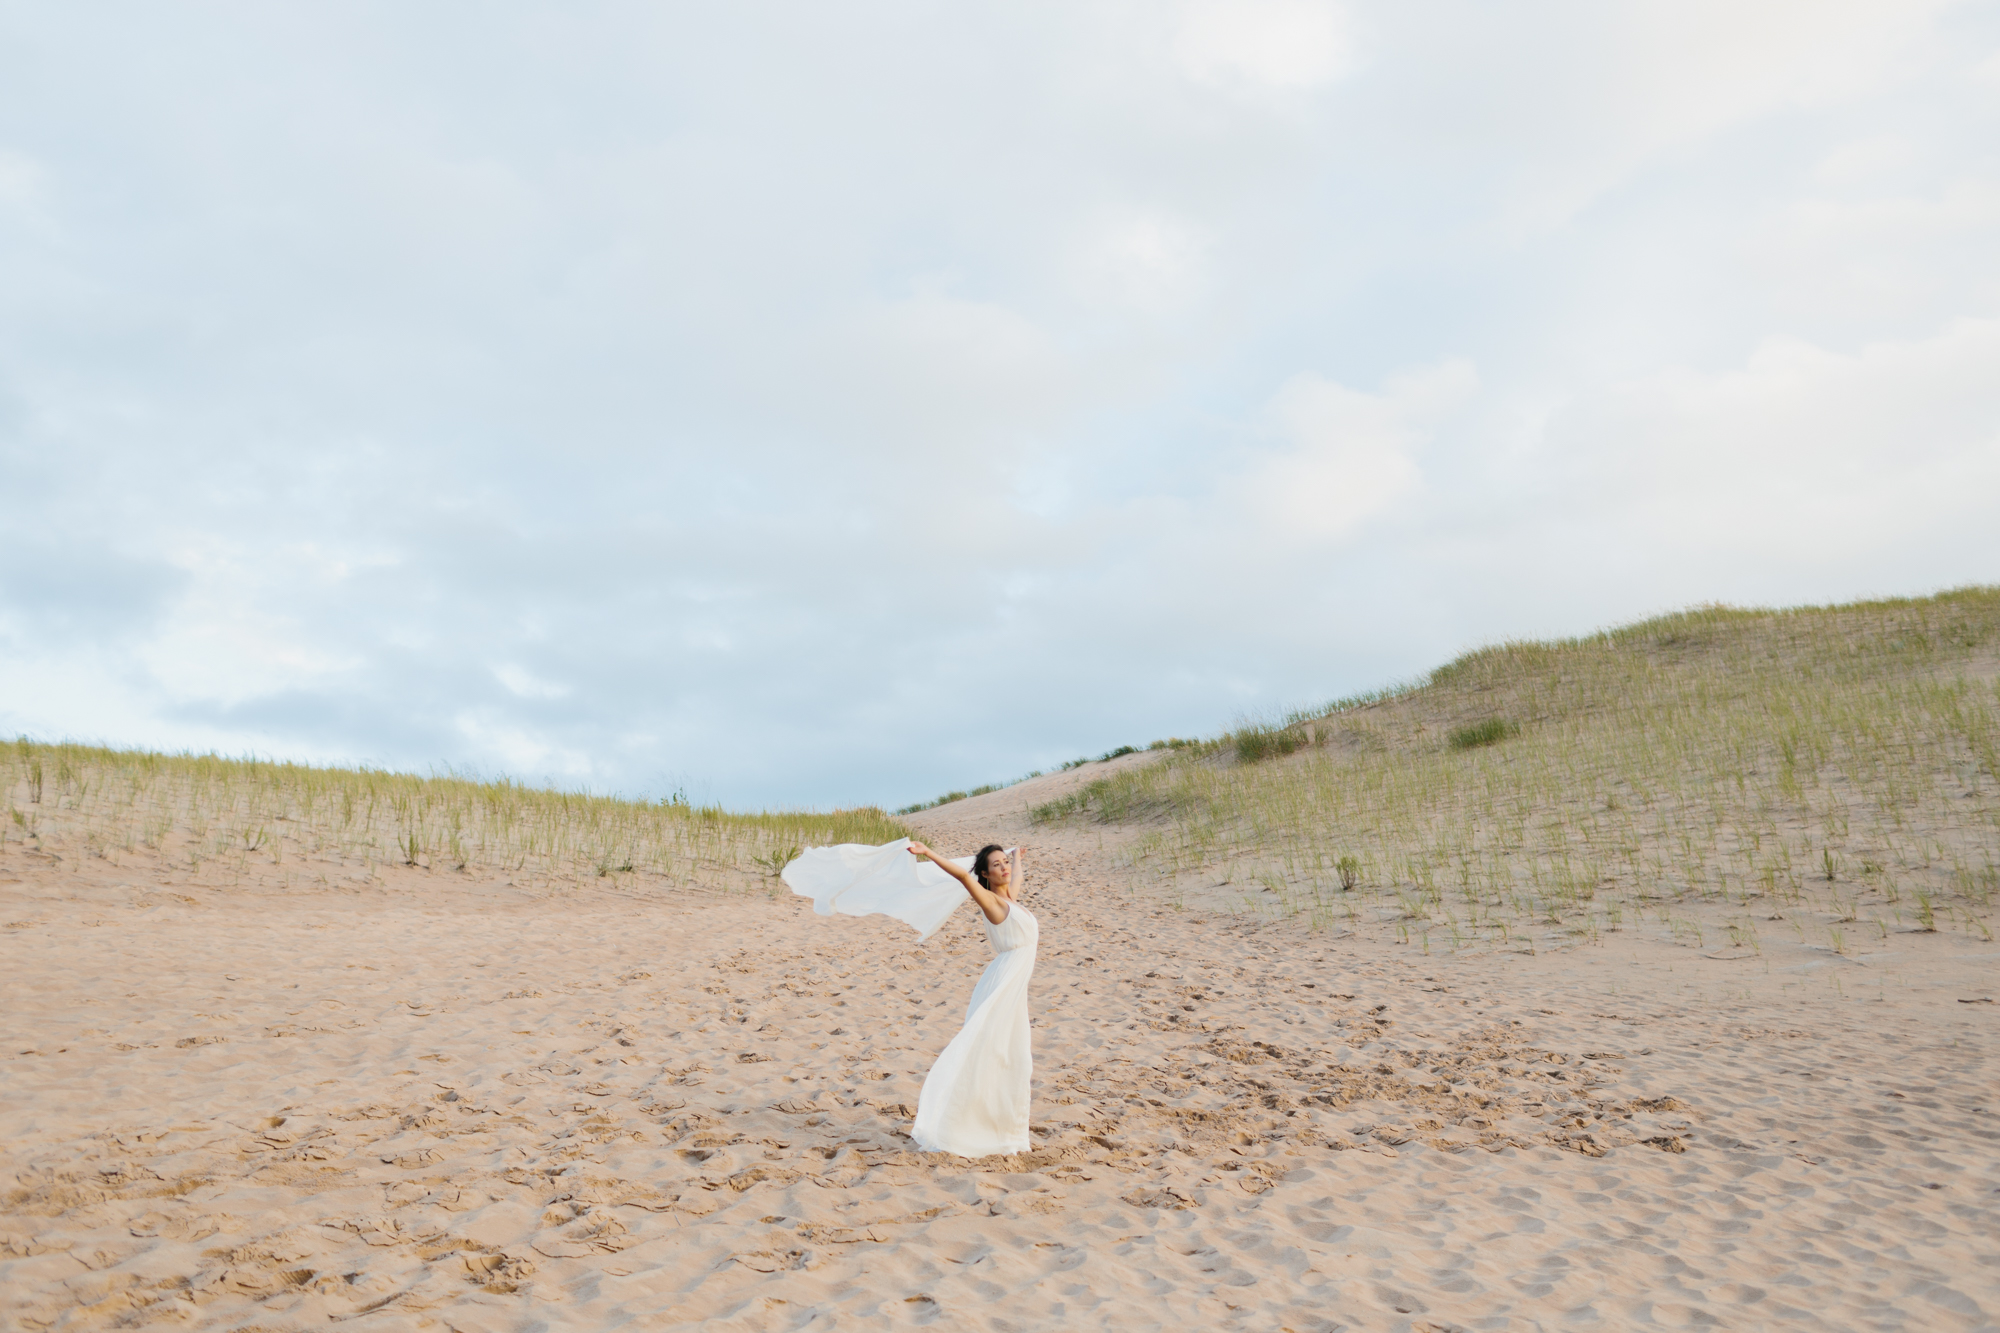 Sleeping Bear Dunes Bridal Portraits Wedding Photographer Mae Stier-042.jpg